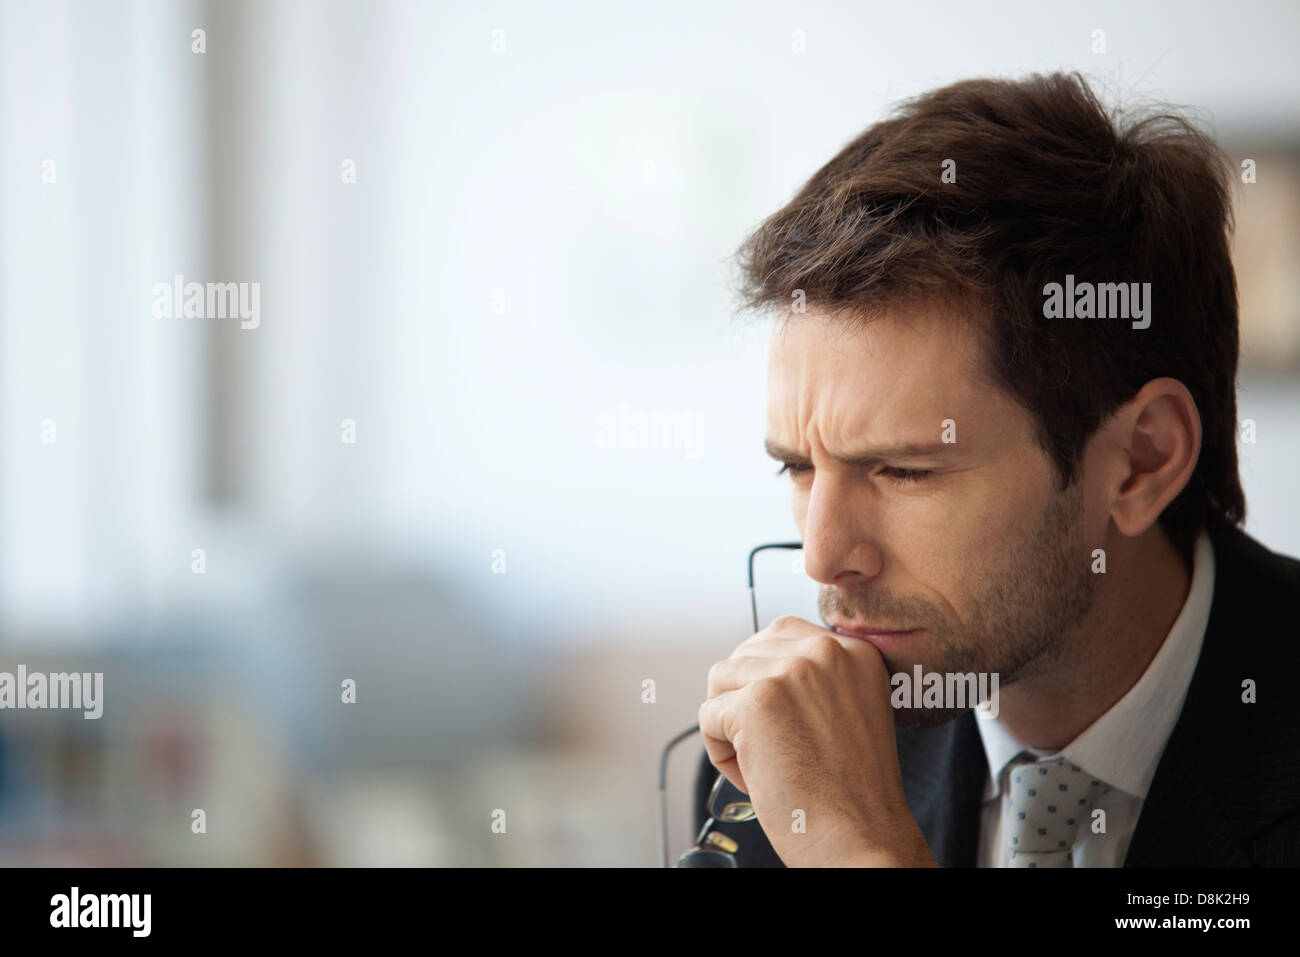 Businessman thinking with furrowed brow - Stock Image